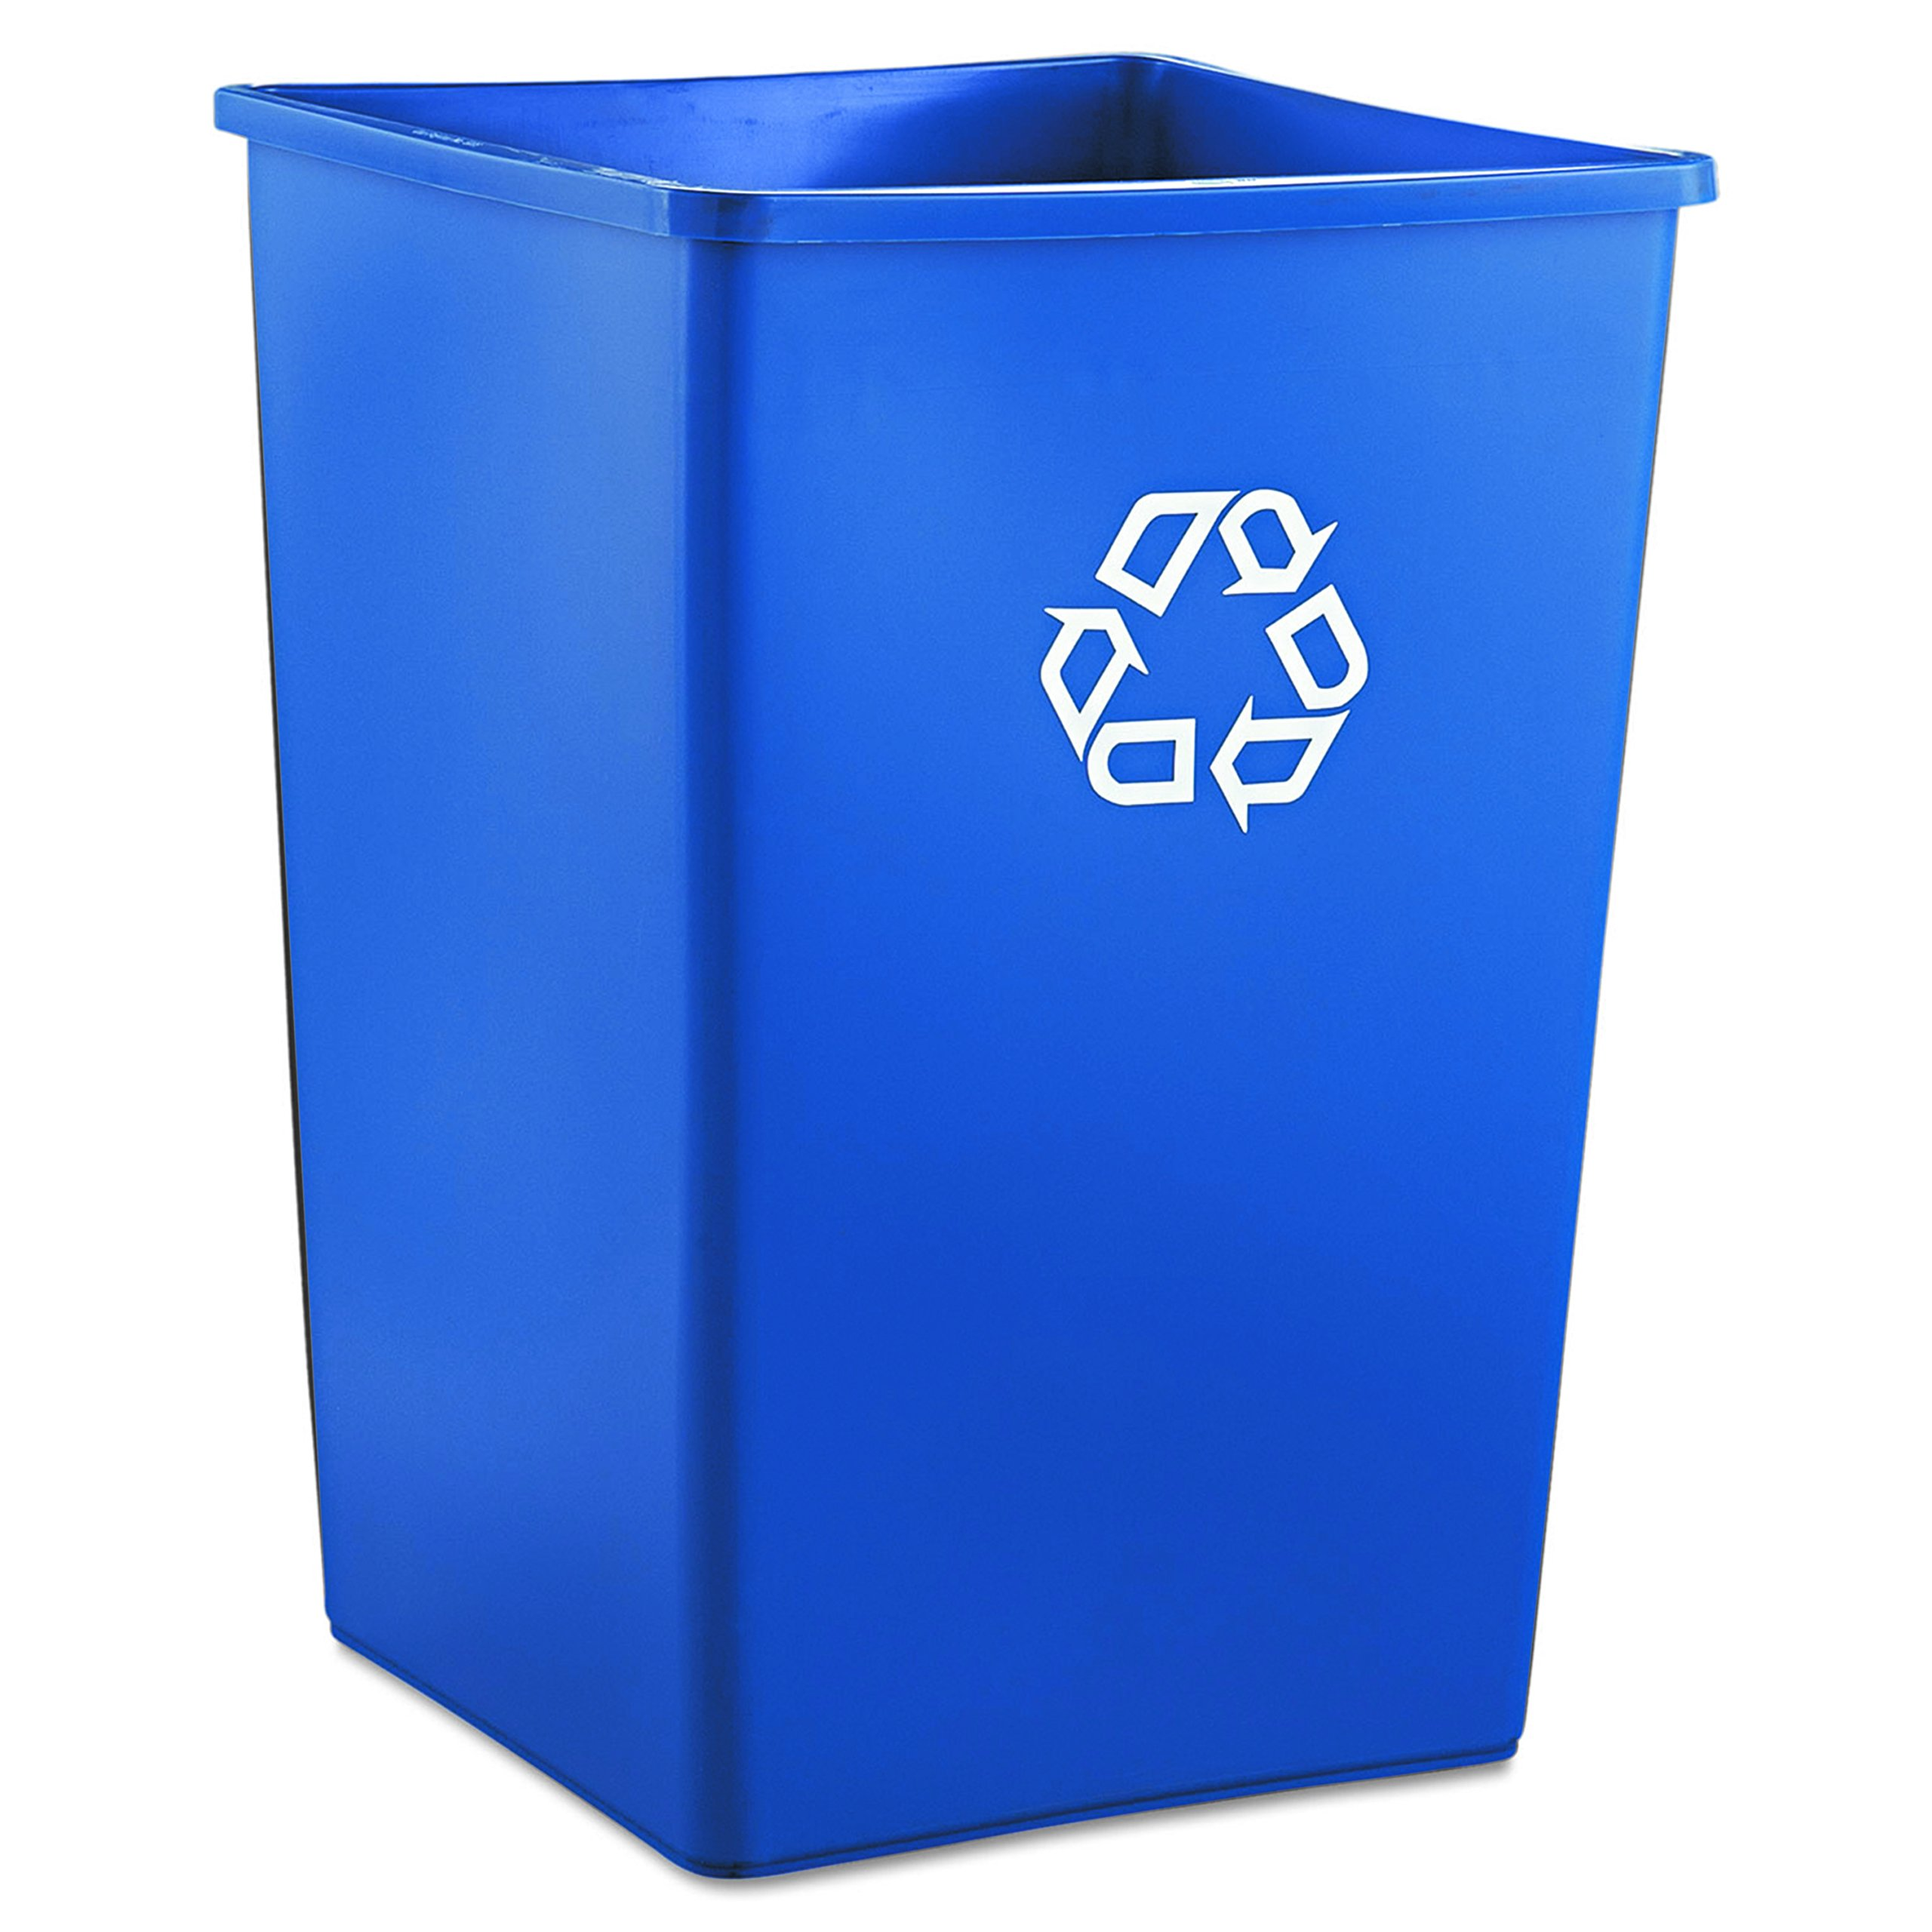 Rubbermaid Commercial RCP 3958-73 BLU Recycling Container, Square, Plastic, 35 gal, Blue